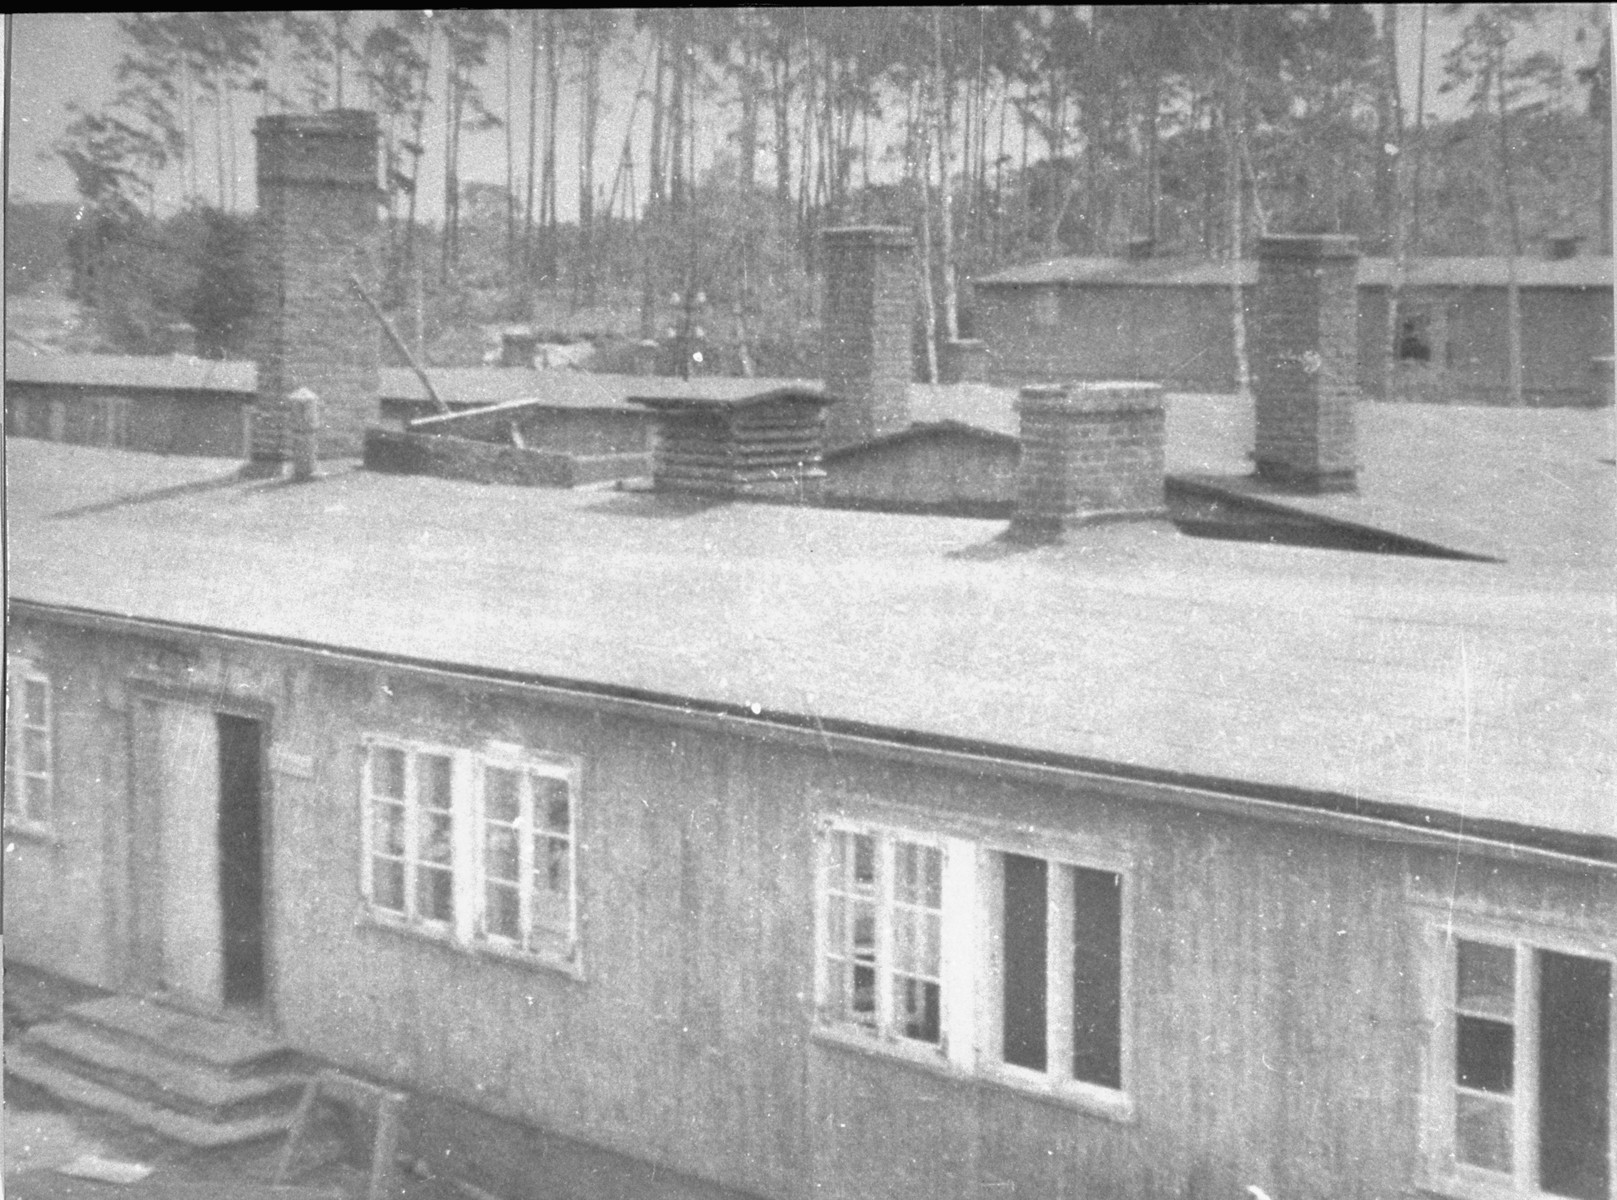 Barracks in the old section of the camp.